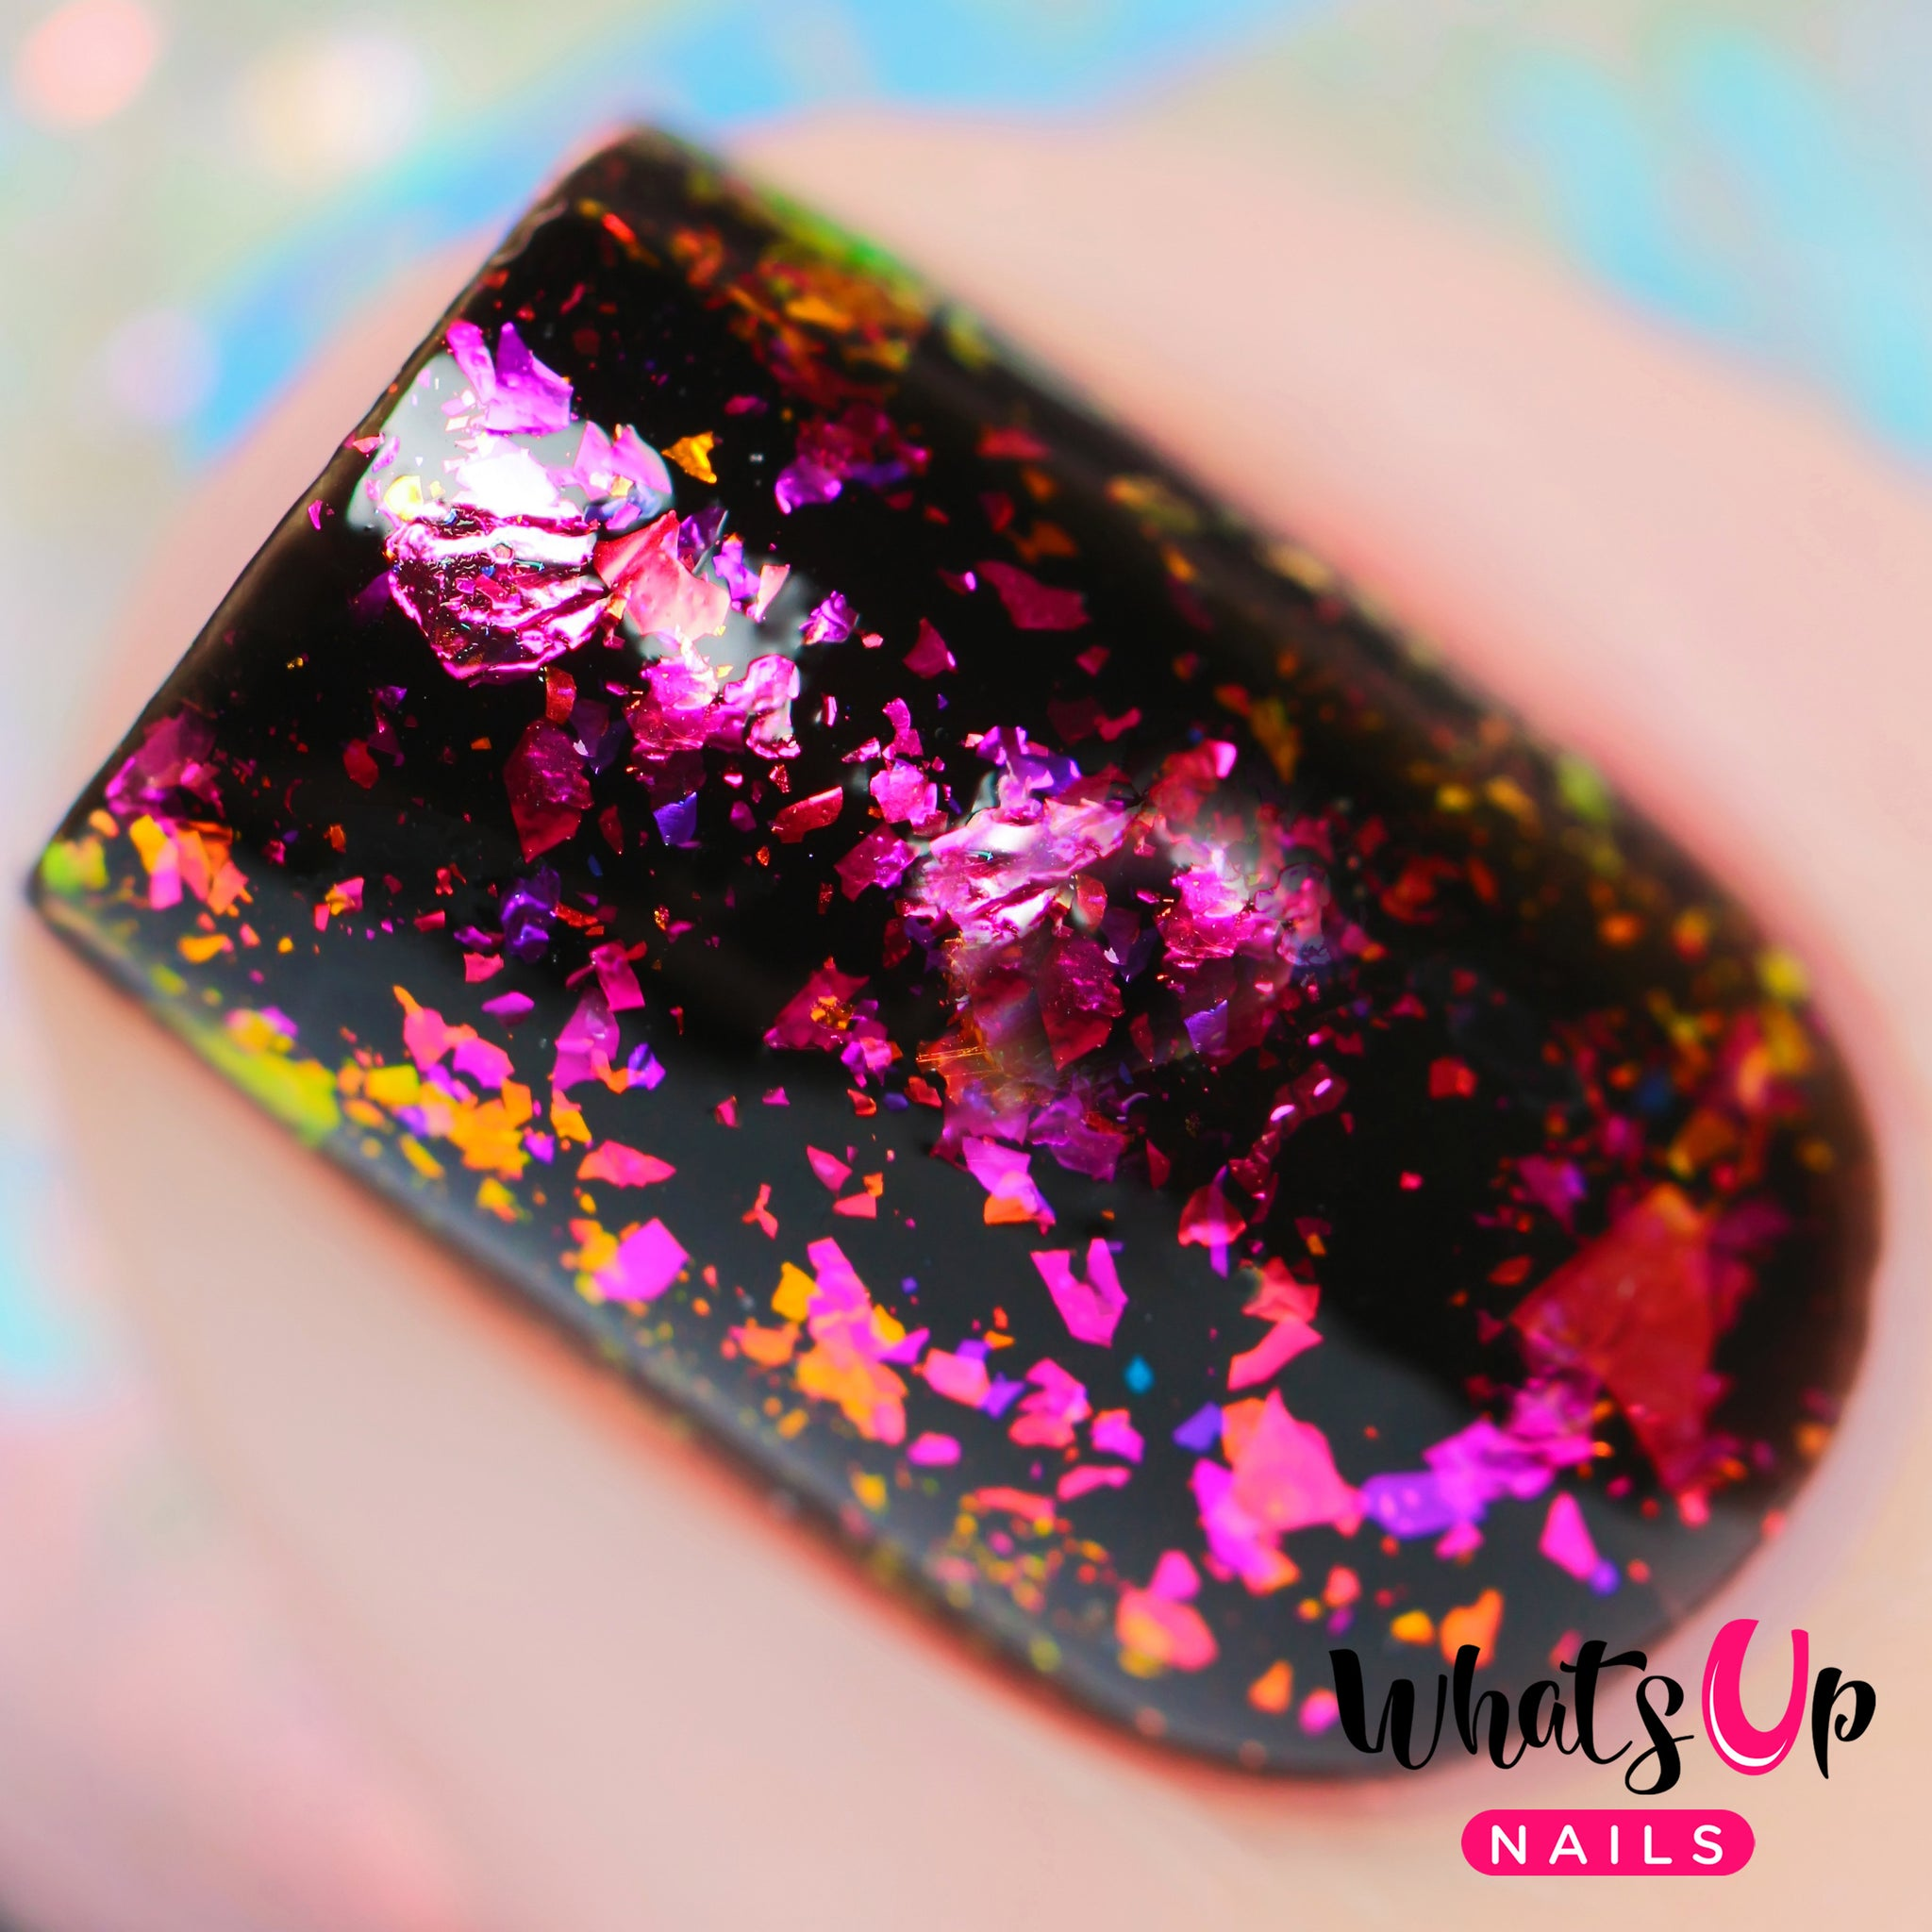 Whats Up Nails - Lipstick Flakies | Whats Up Nails